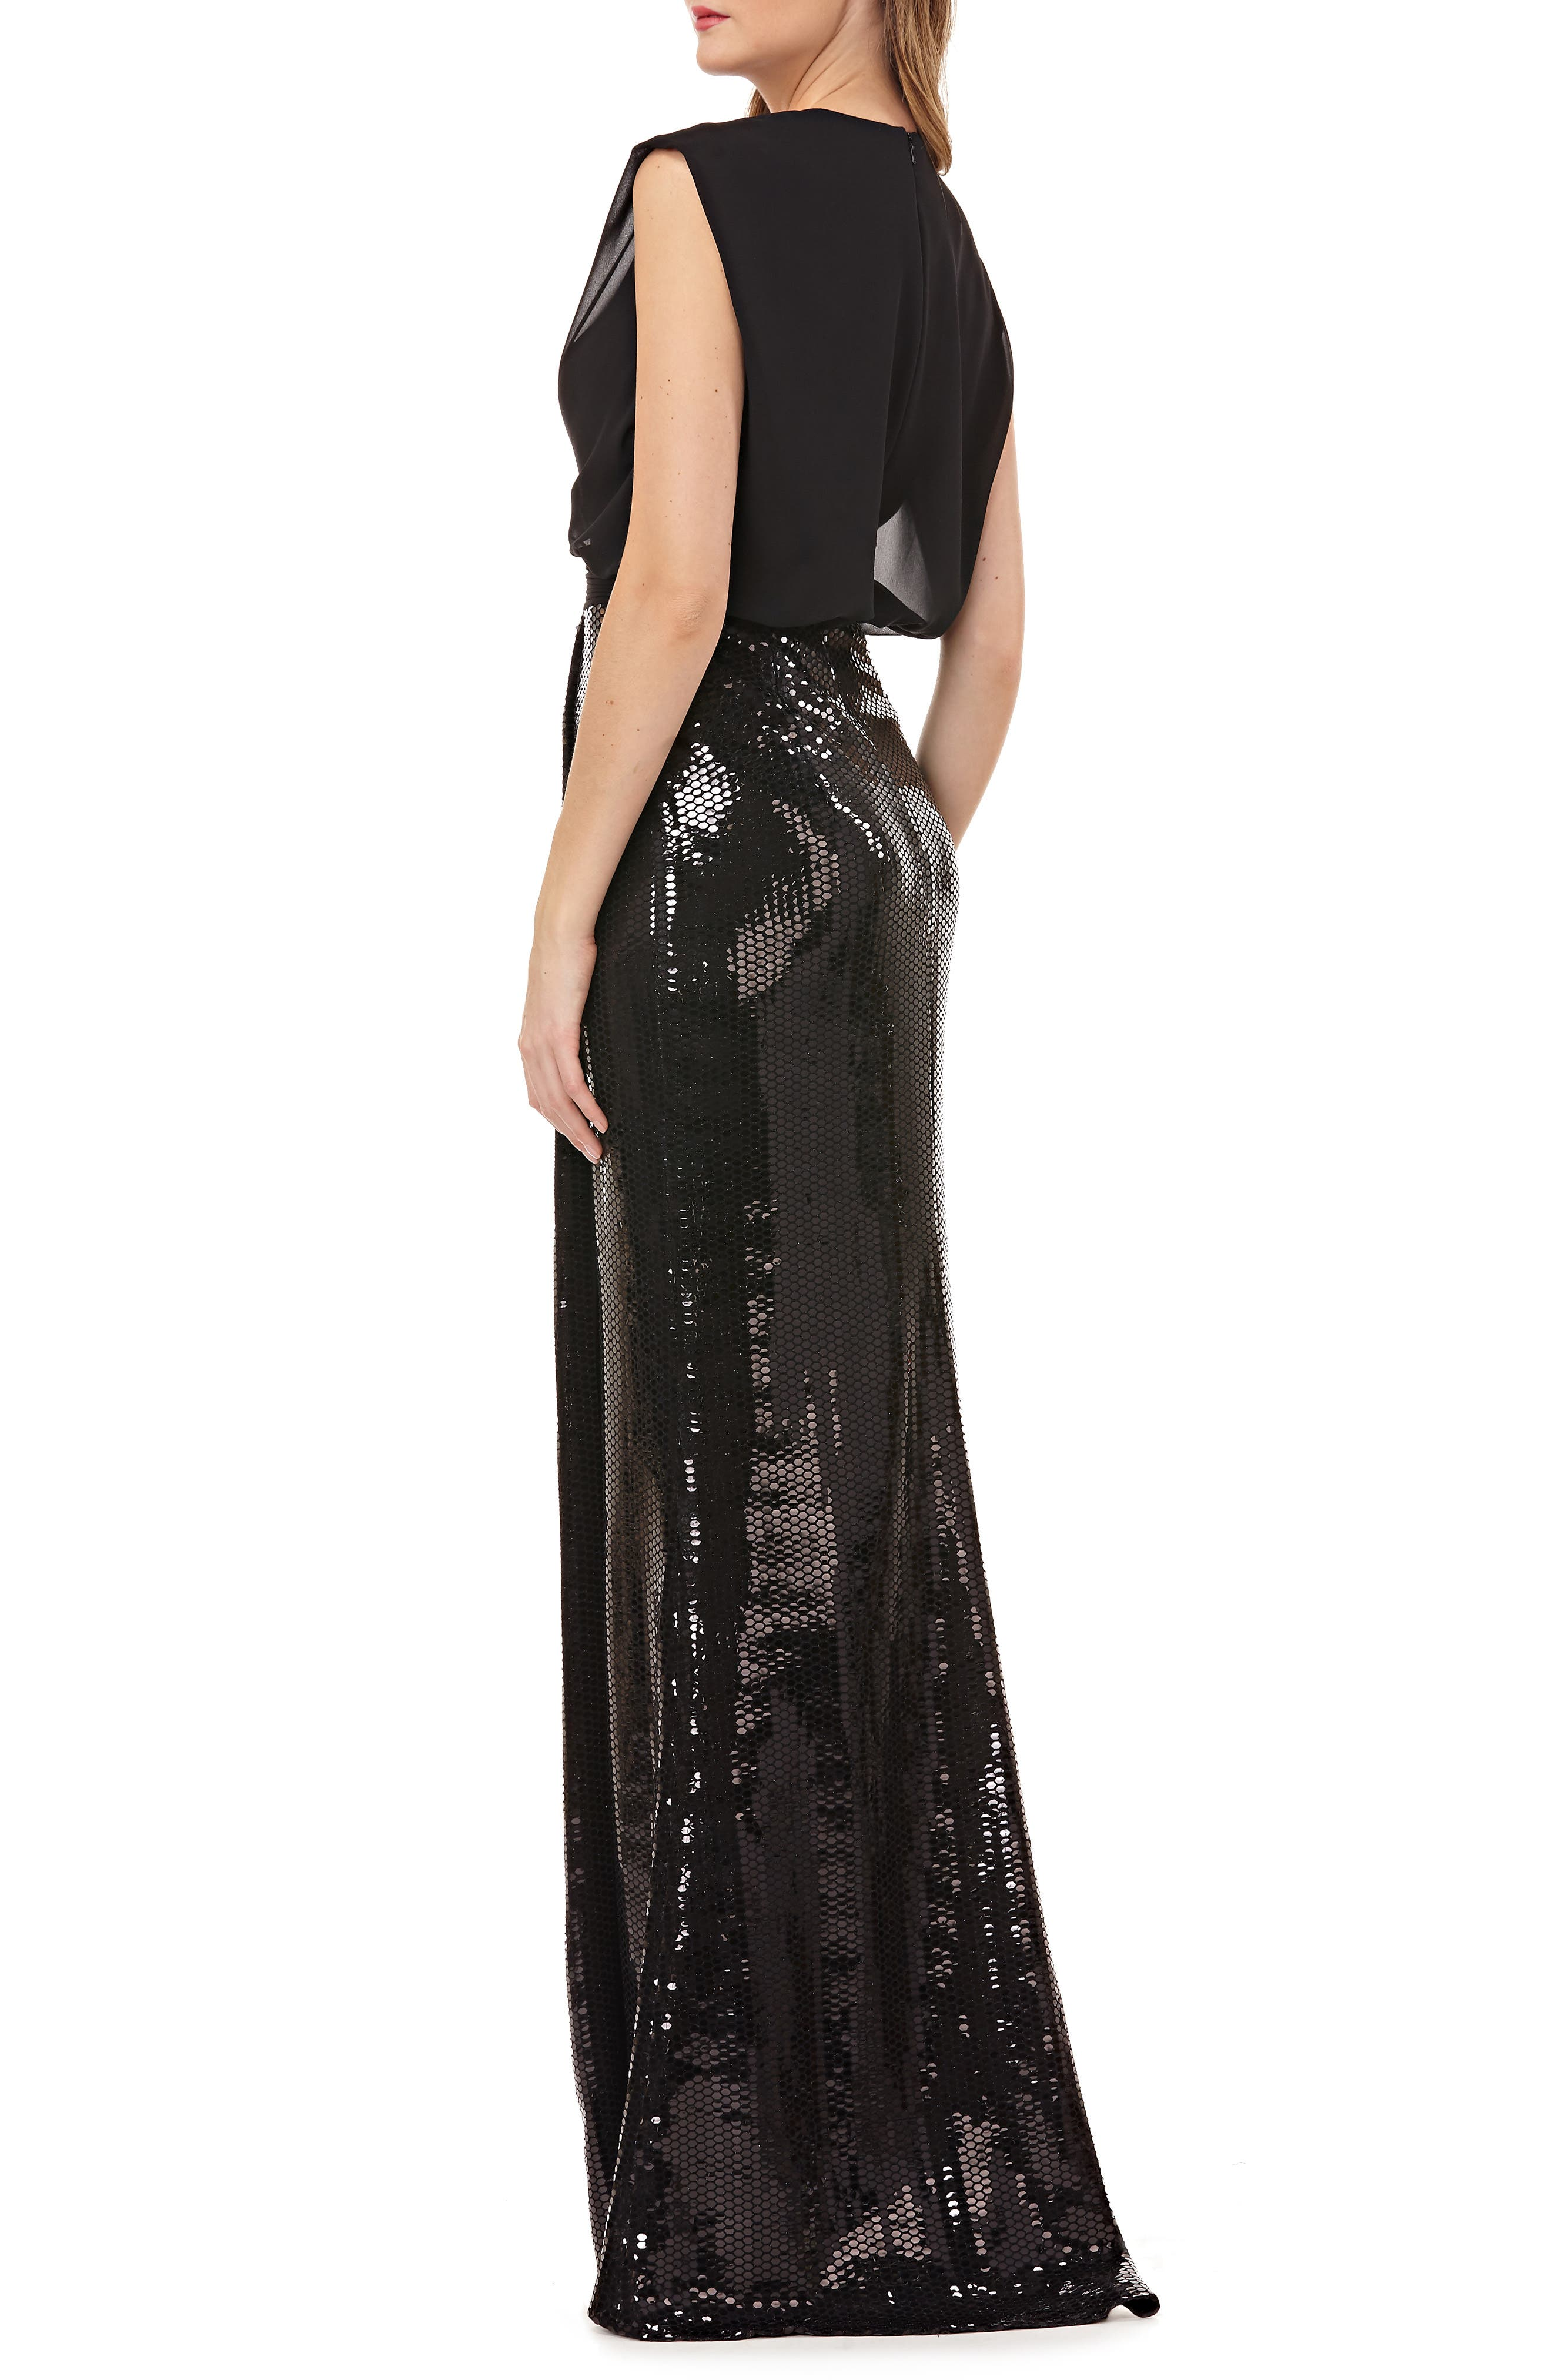 KAY UNGER, Sequin Gown, Alternate thumbnail 2, color, 001